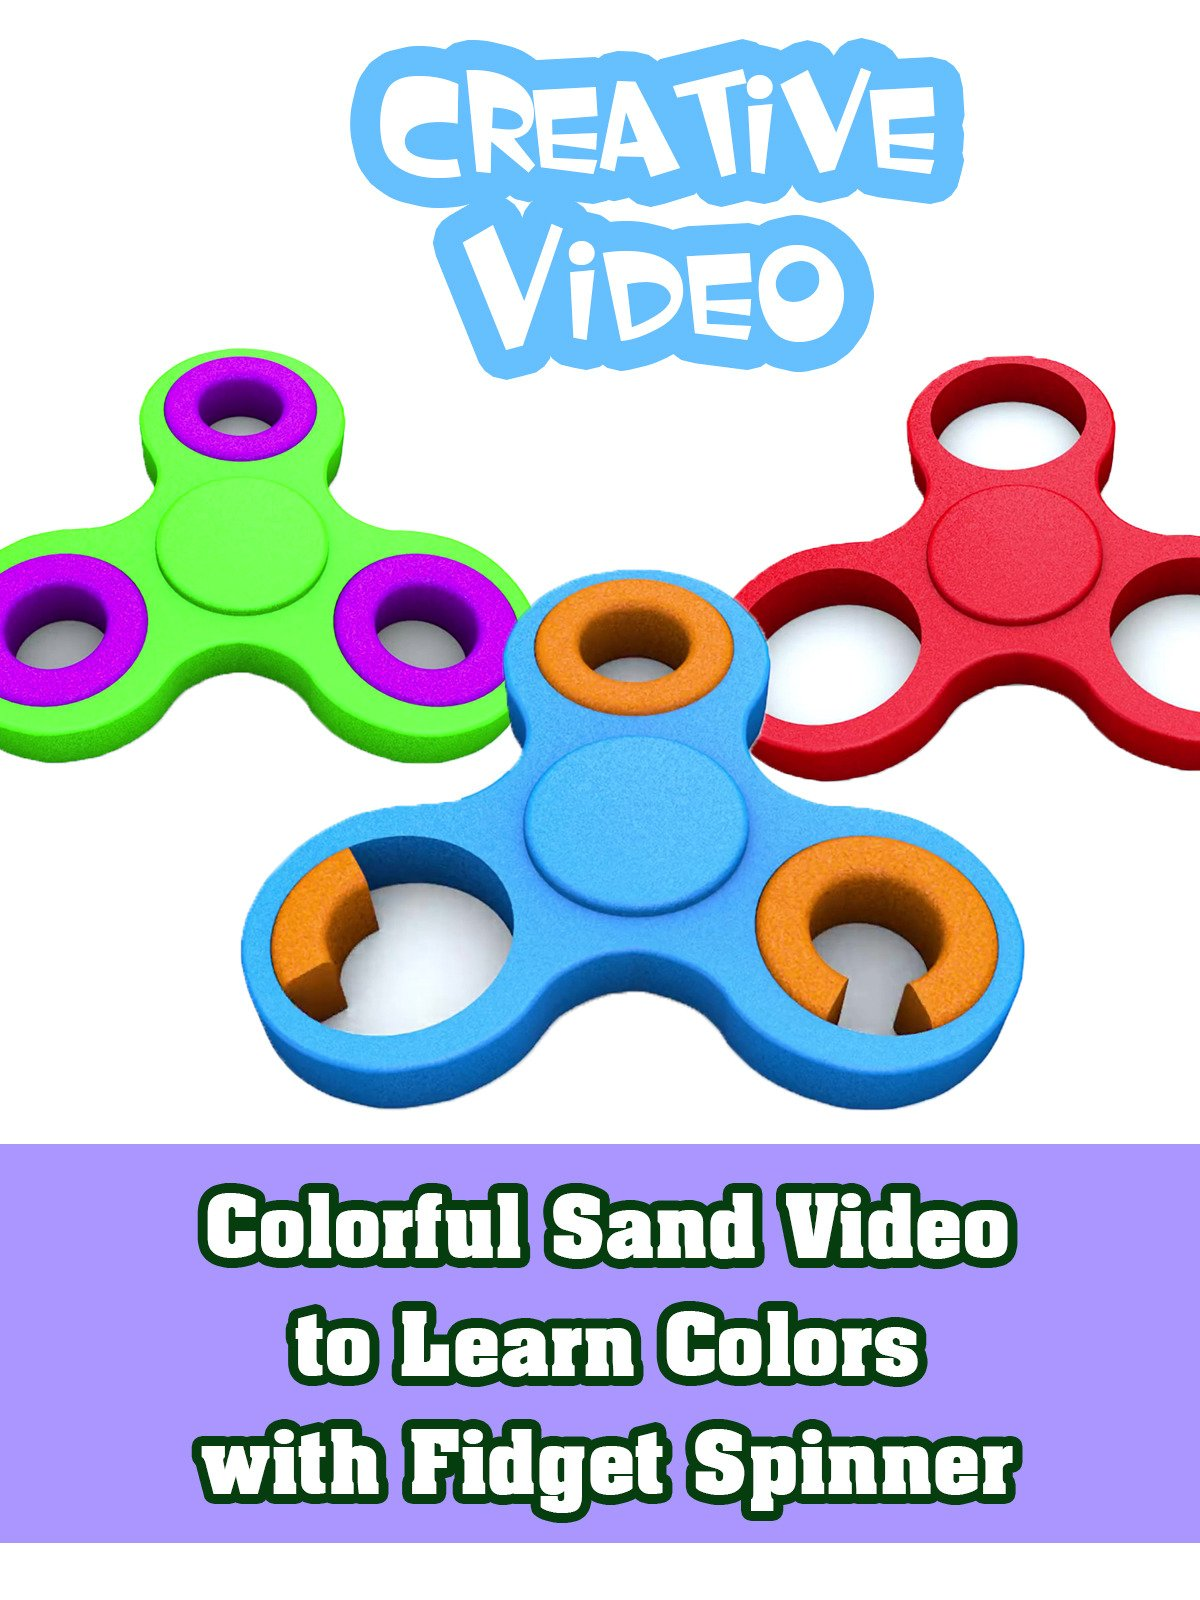 Colorful Sand Video to Learn Colors with Fidget Spinner